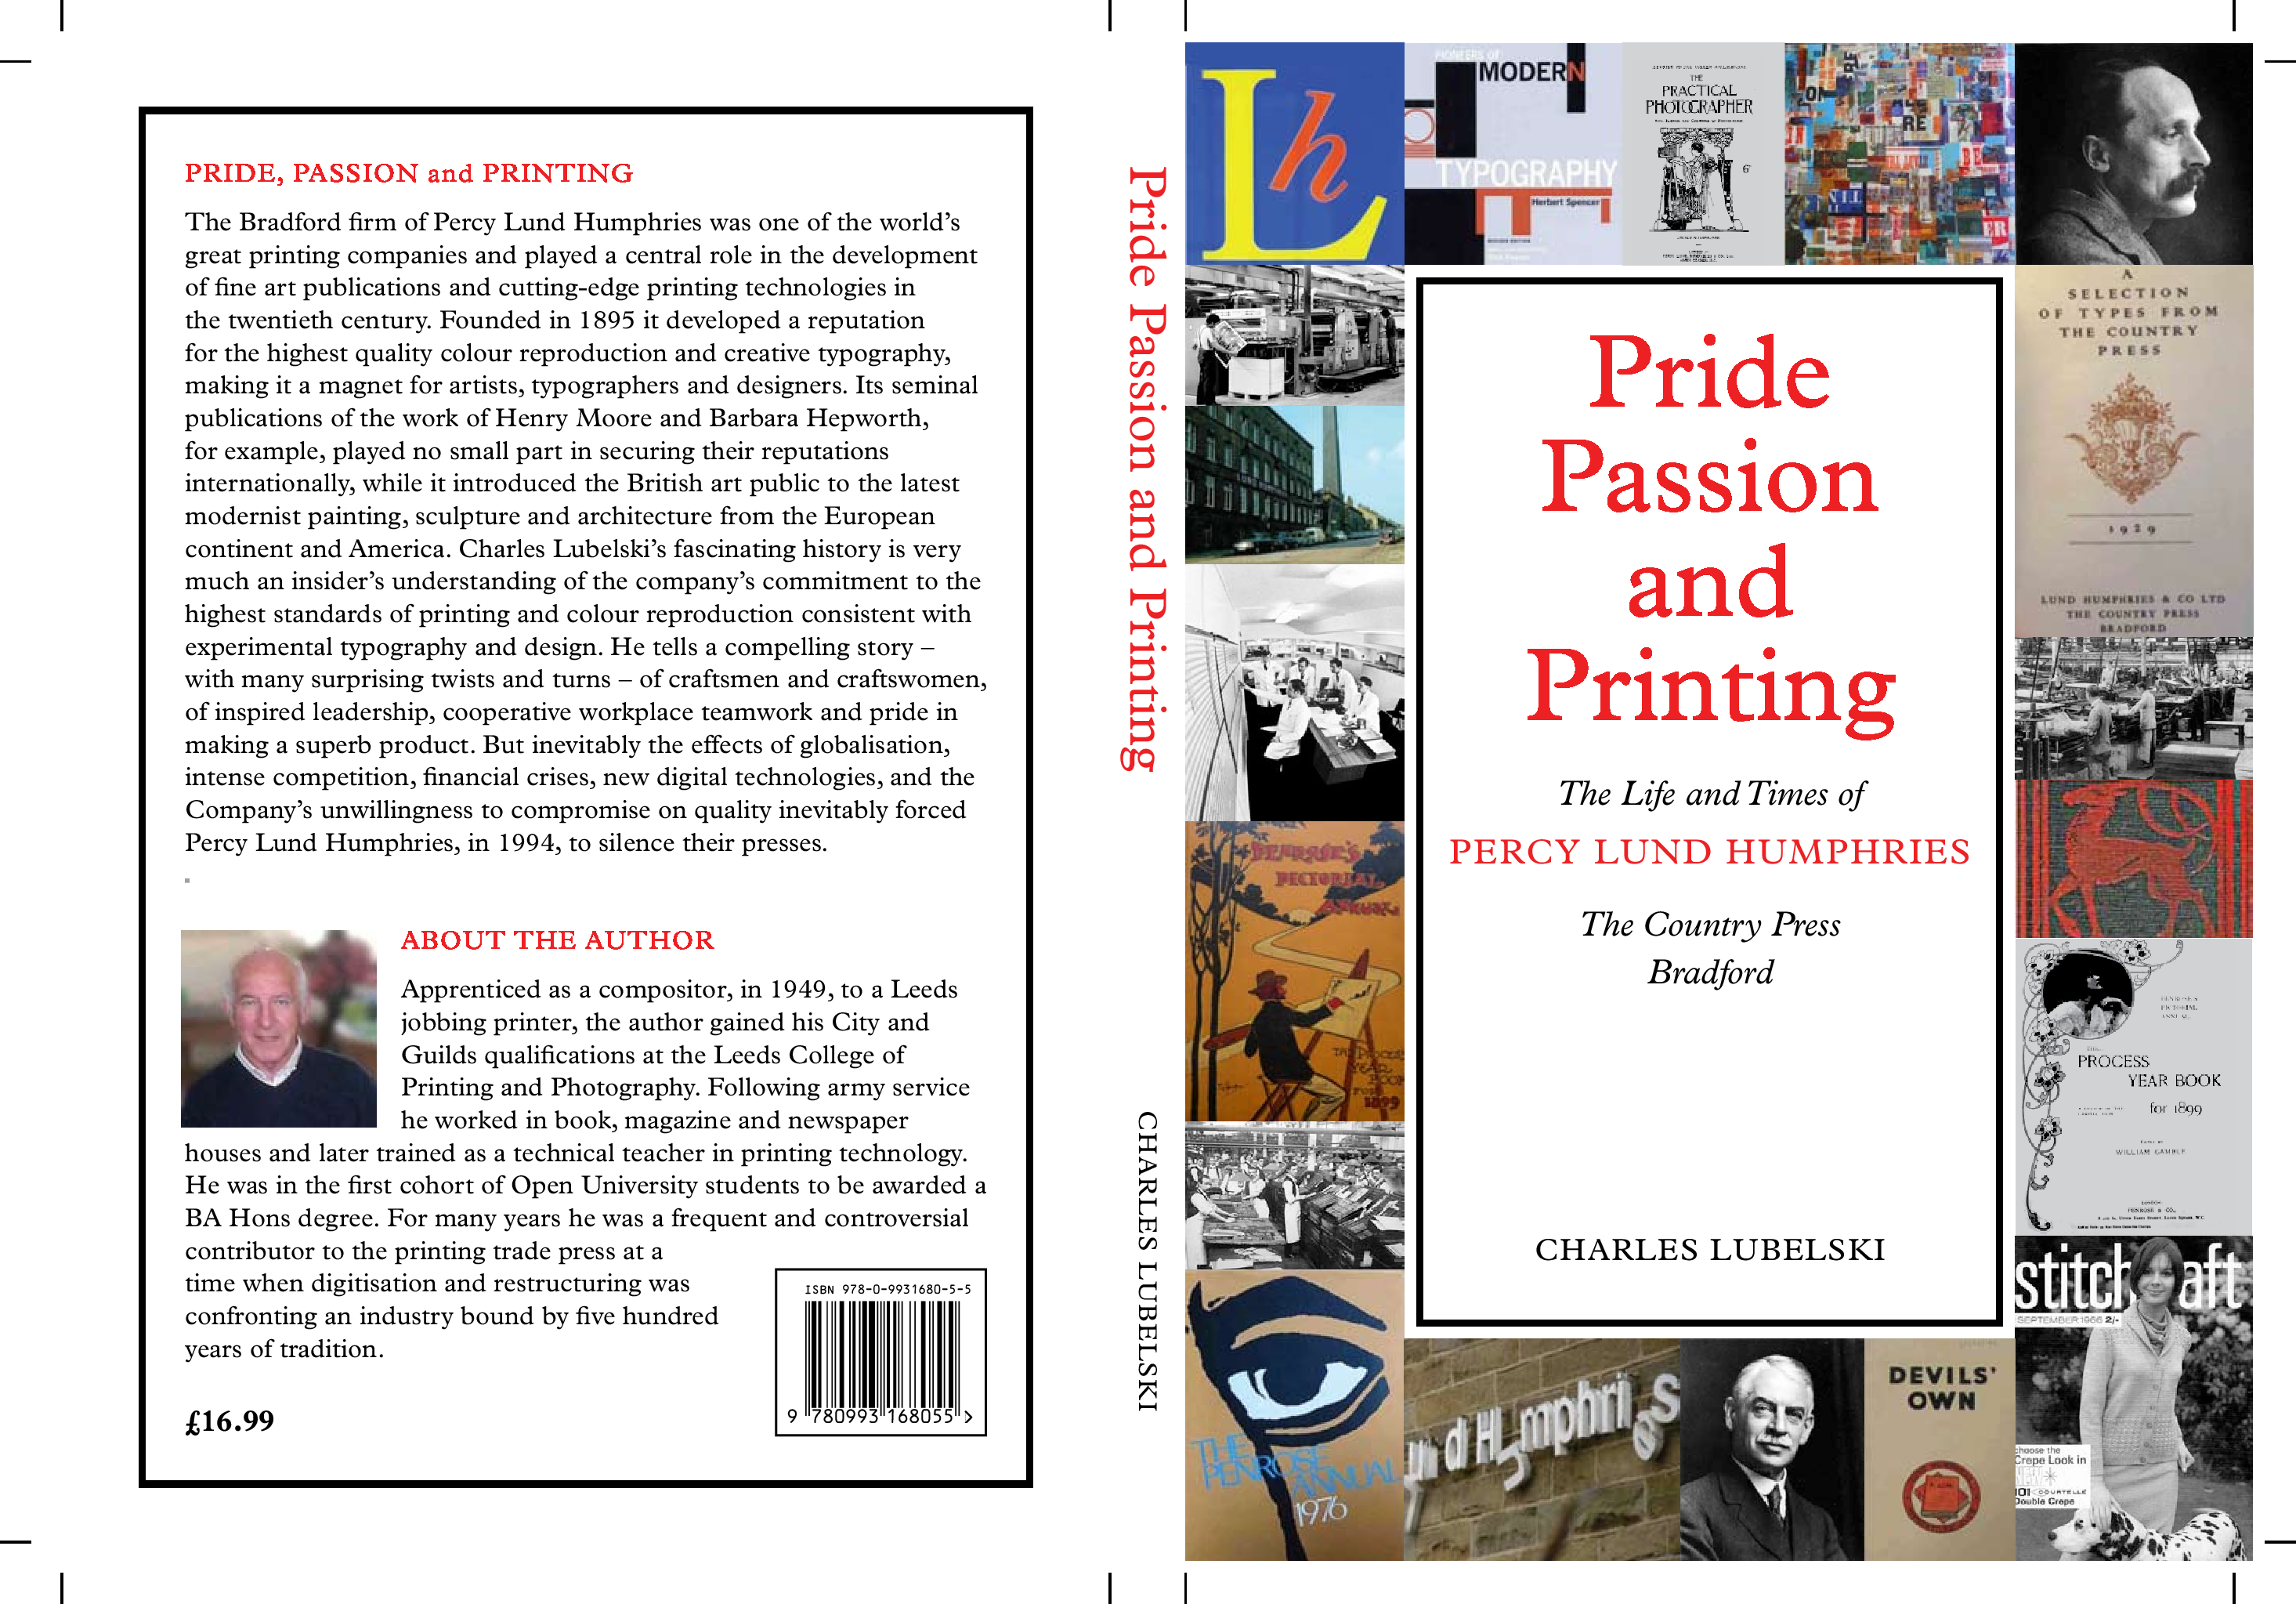 Pride-Passion-and-Printing-cover-26-10-18